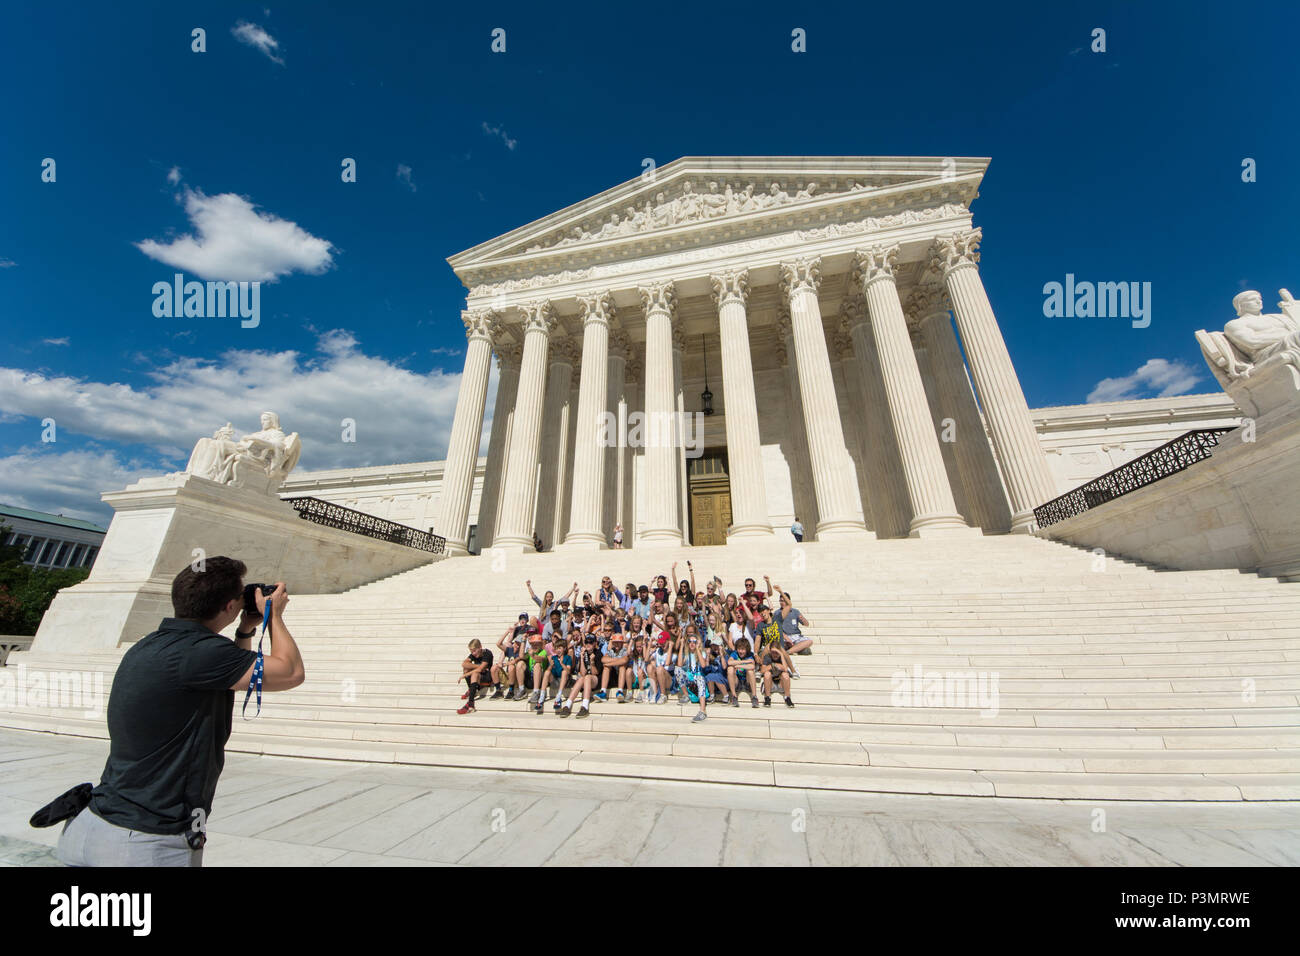 The Supreme Court Building is the seat of the Supreme Court of the Judicial Branch of United States of America. Completed in 1935, it is located in th - Stock Image